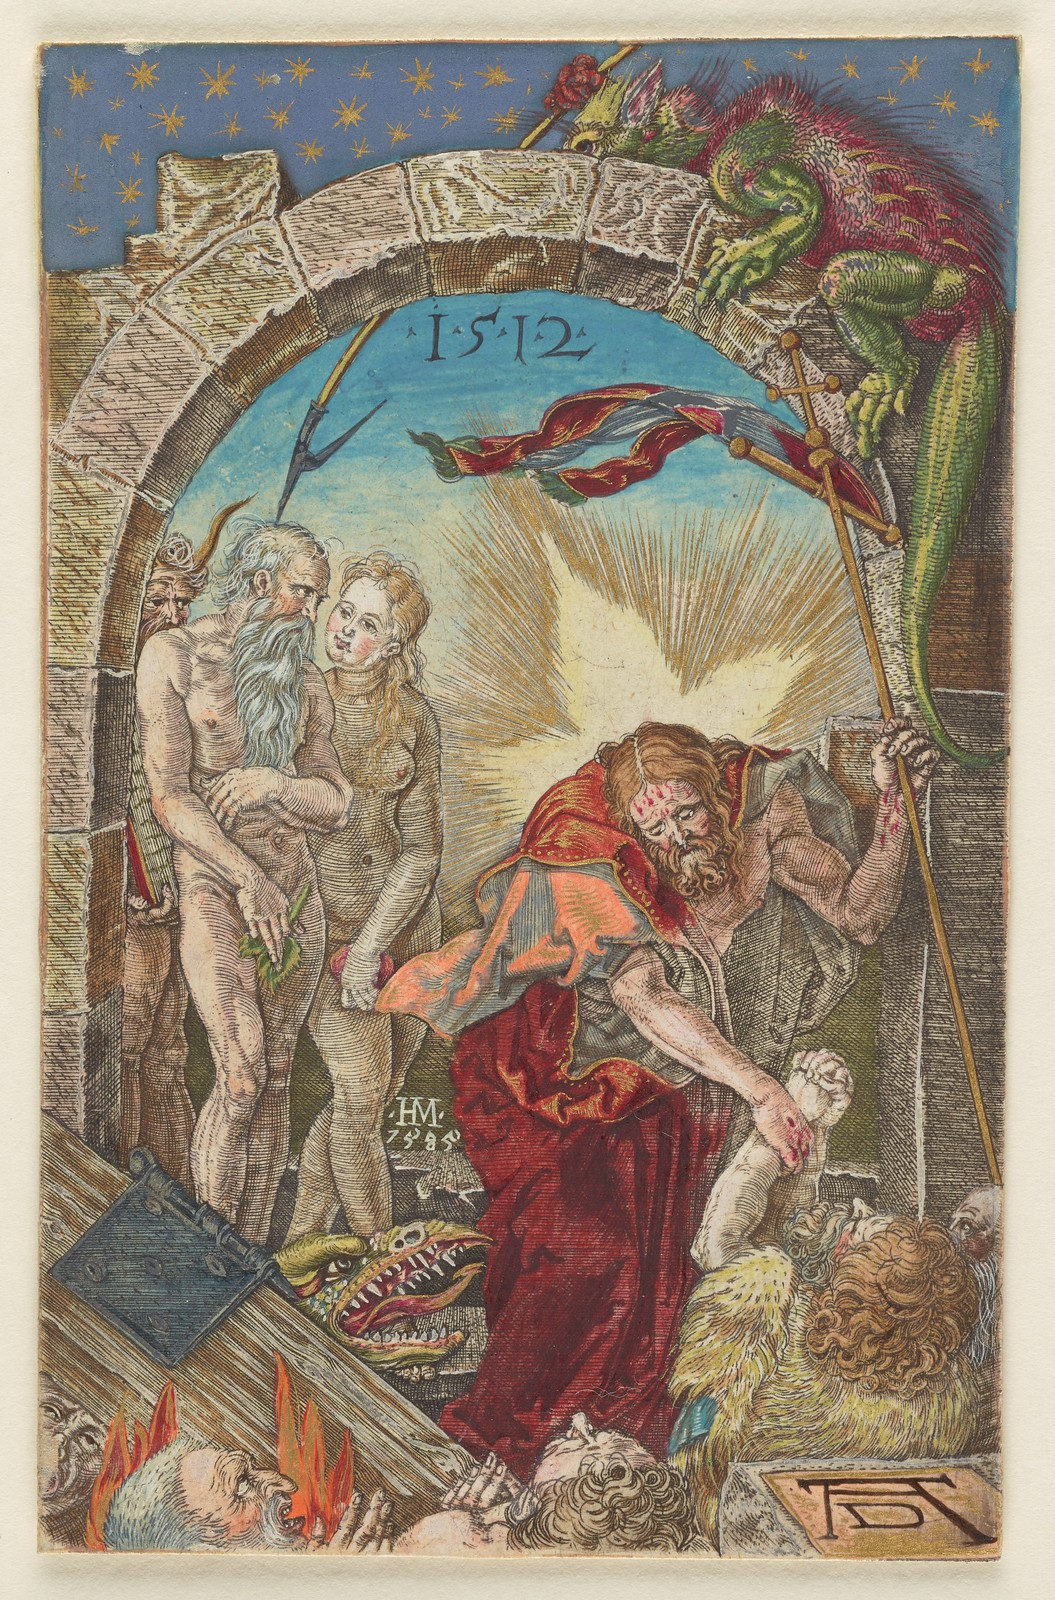 Albrecht Dürer - Harrowing of Hell, from the Engraved Passion series (1512), Hand-coloured by Hans Mack, 1585